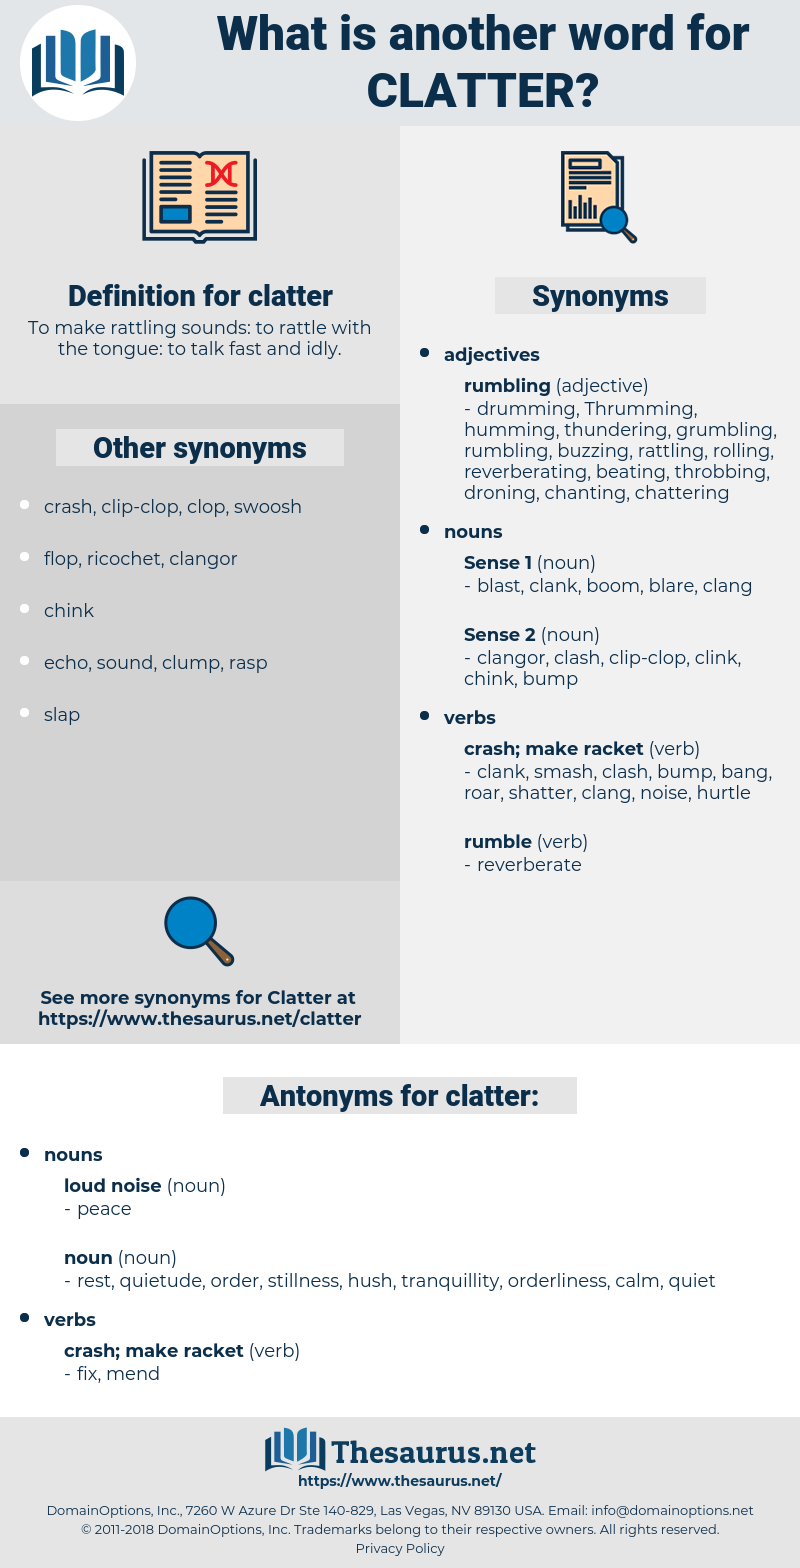 clatter, synonym clatter, another word for clatter, words like clatter, thesaurus clatter